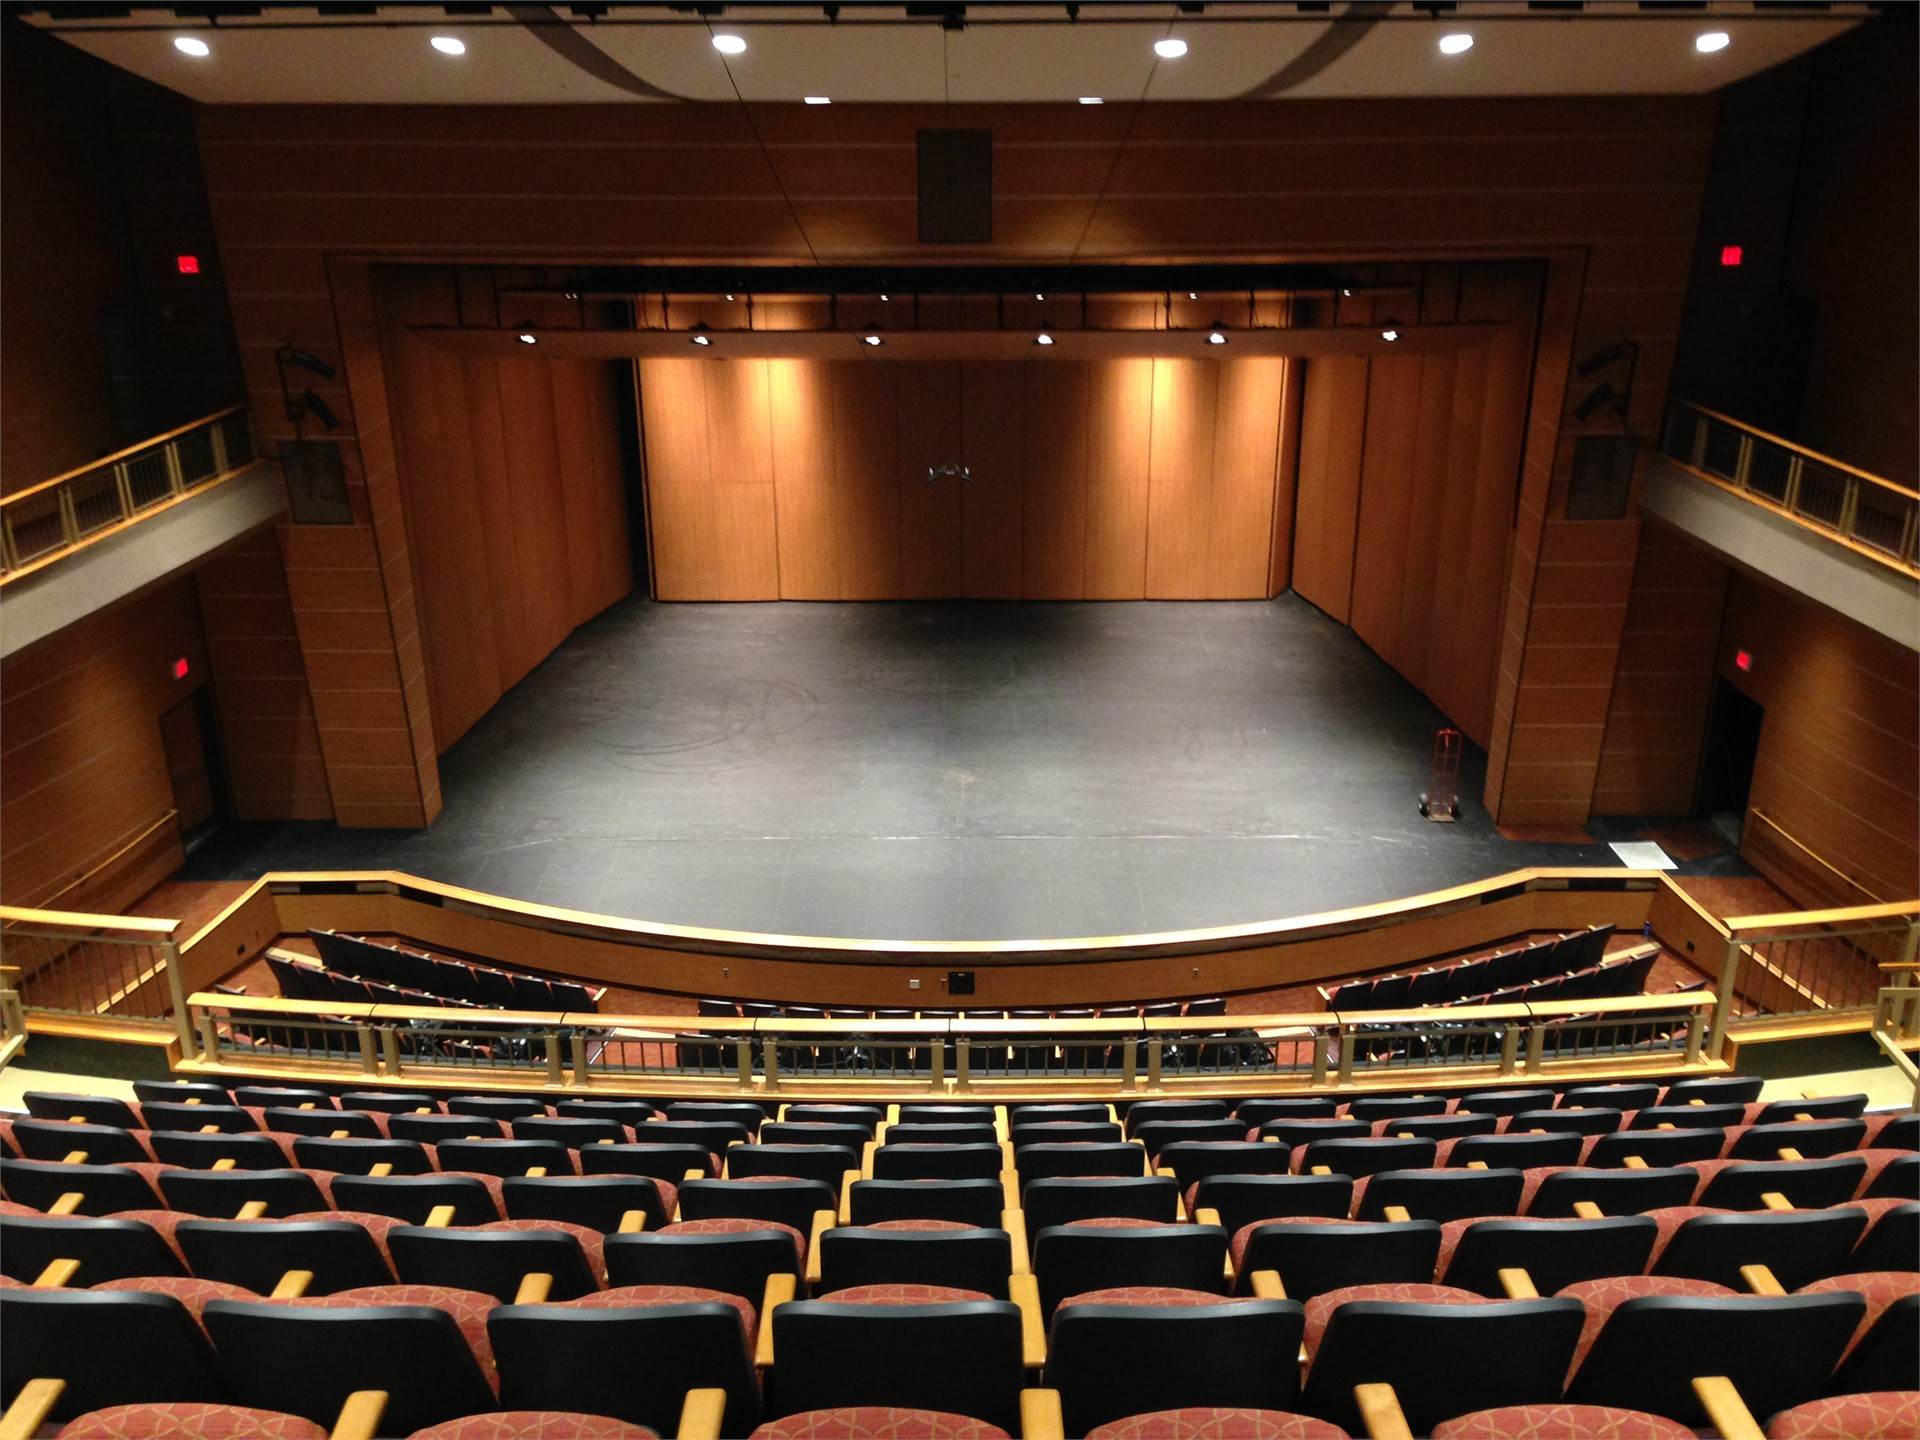 Picture of new auditorium stage from center of balcony